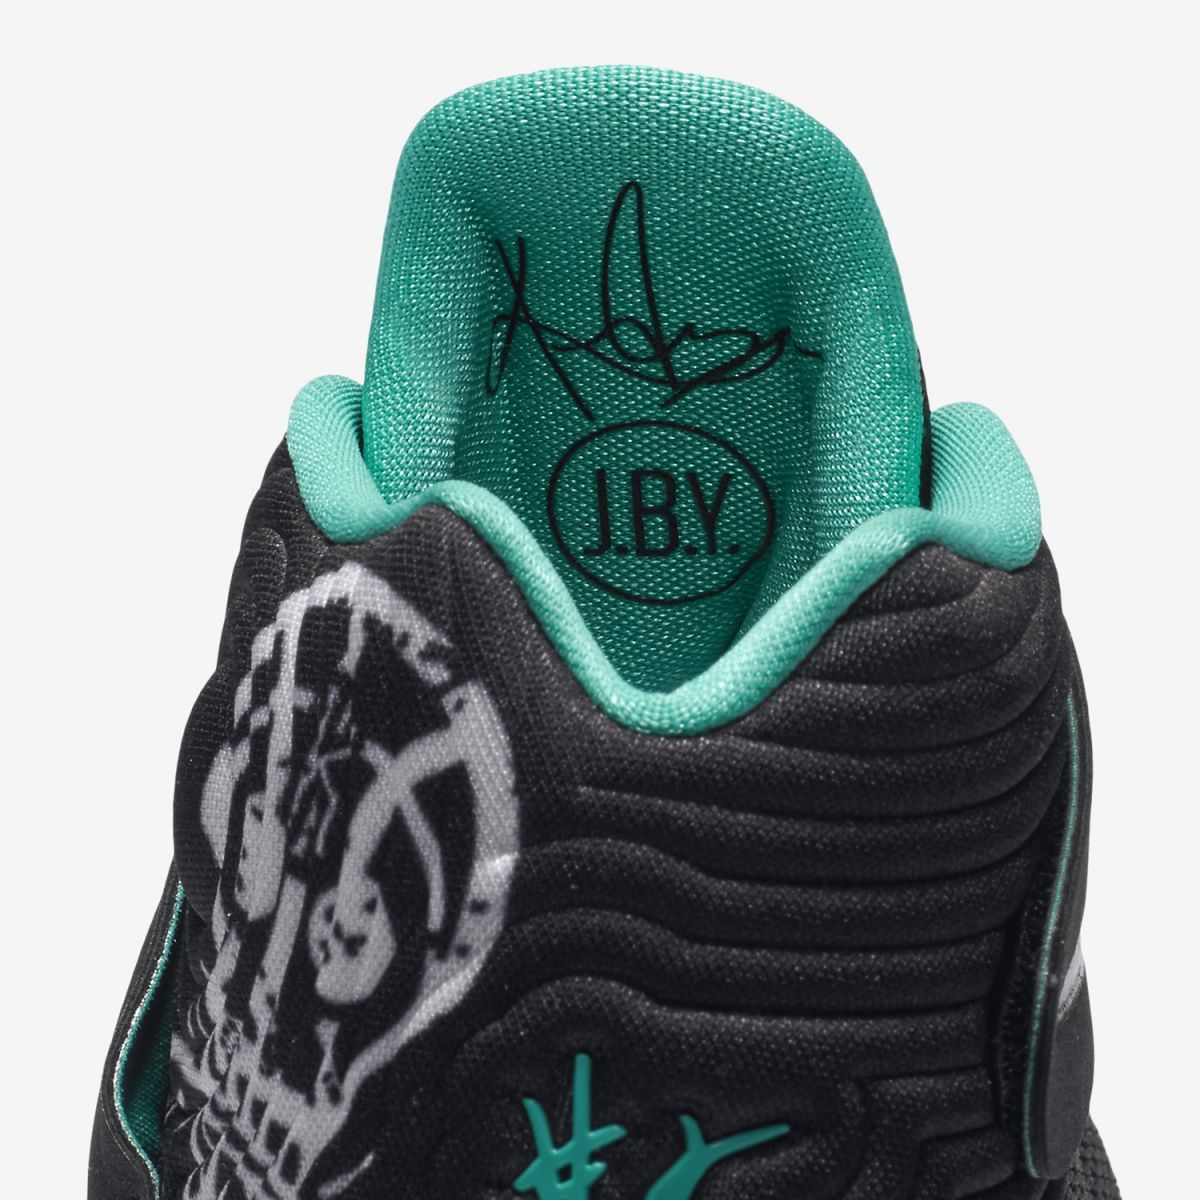 first rate 426e6 77a99 Nike Made Kyrie Irving Shoes for Skateboarders   Sole Collector